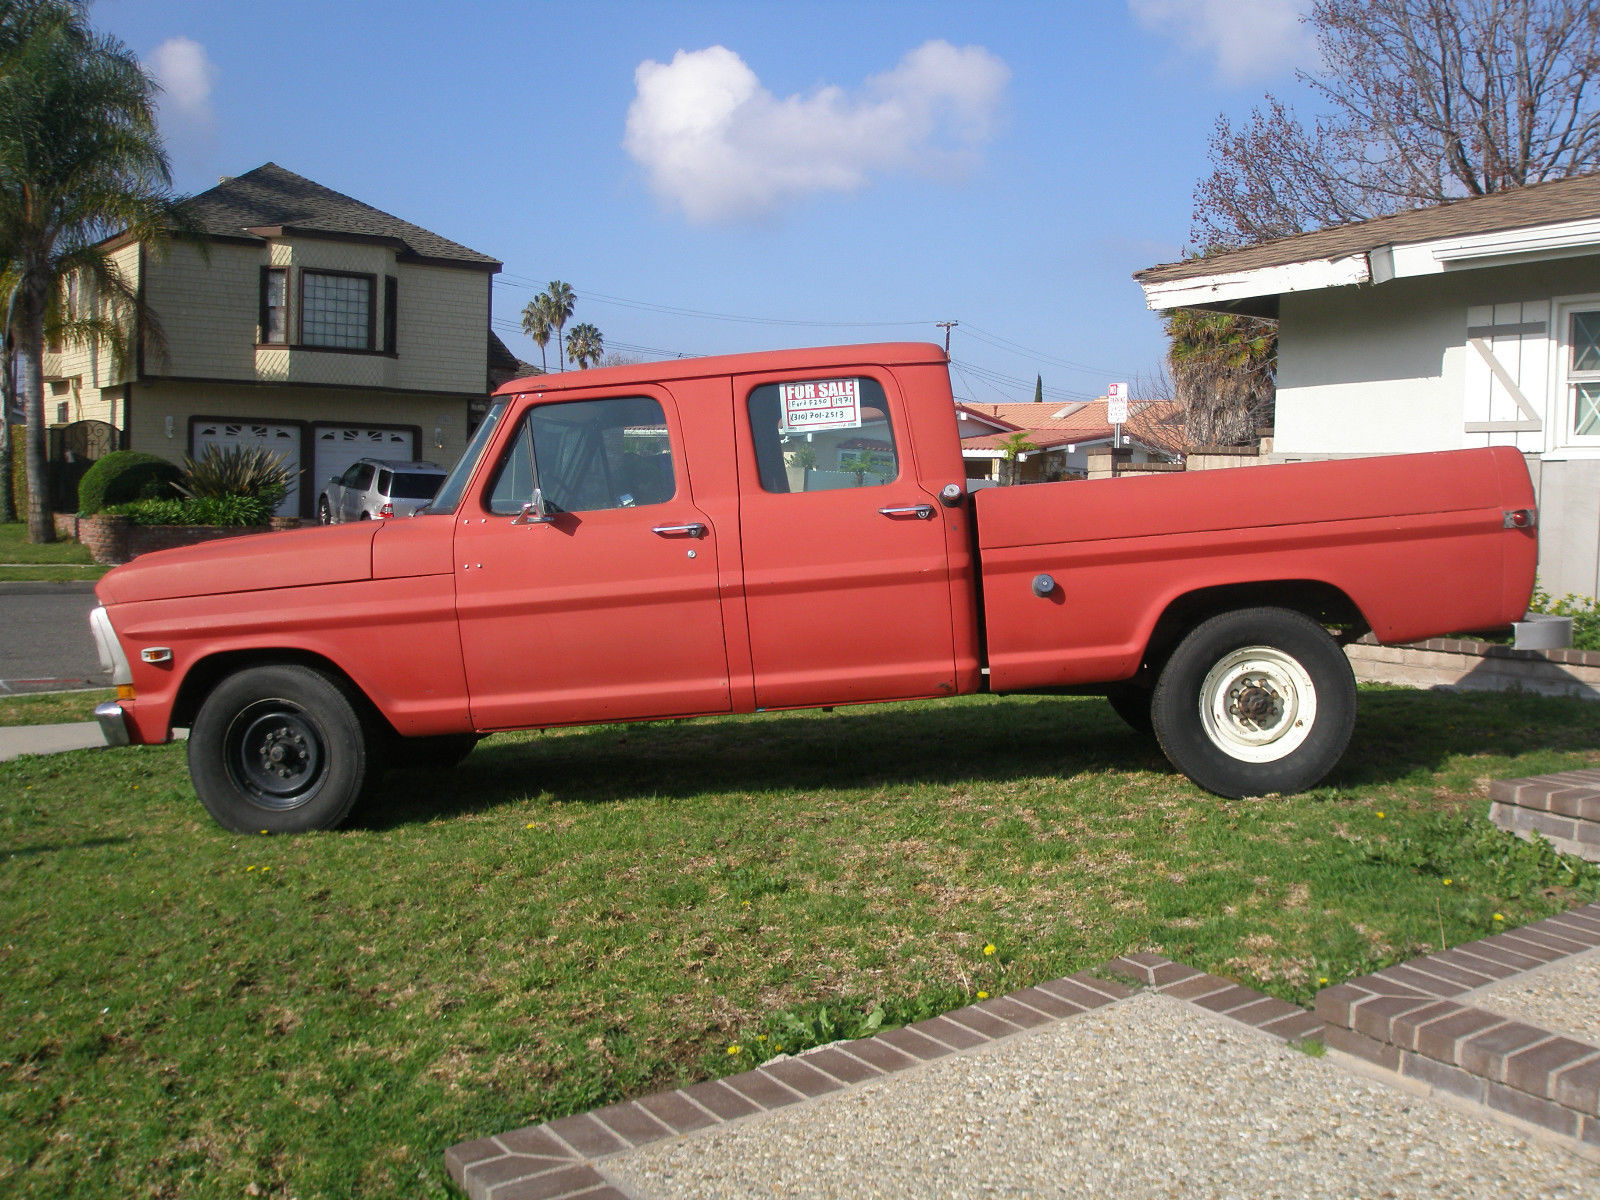 1971 Ford F 250 4 Door Crew Cab 390 F250 For Sale In Torrance 4x4 Highboy California United States